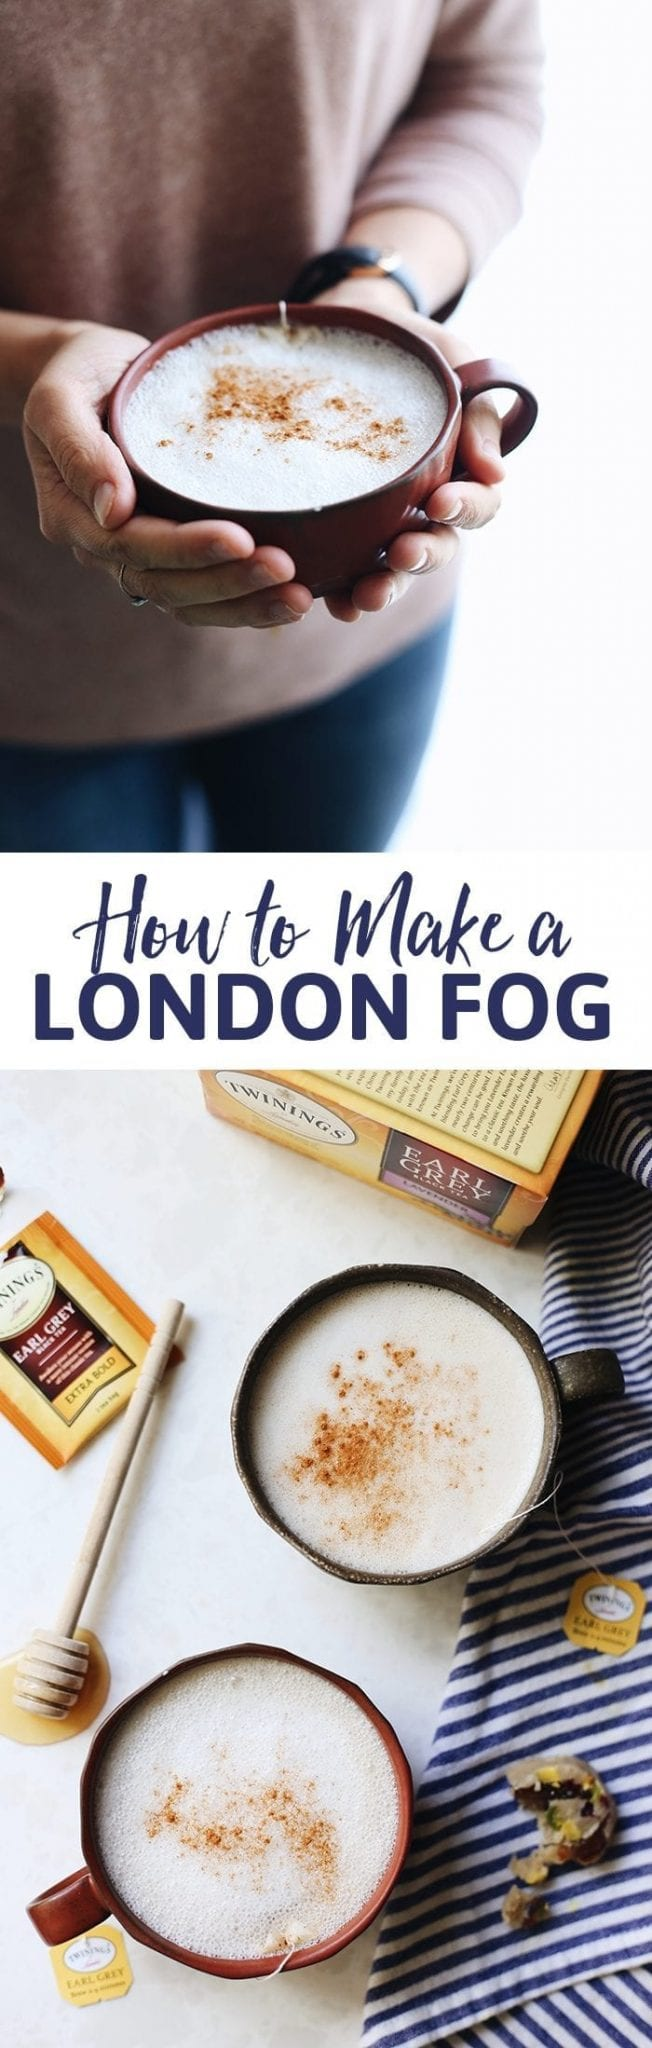 How-To-Make-a-London-Fog-PI